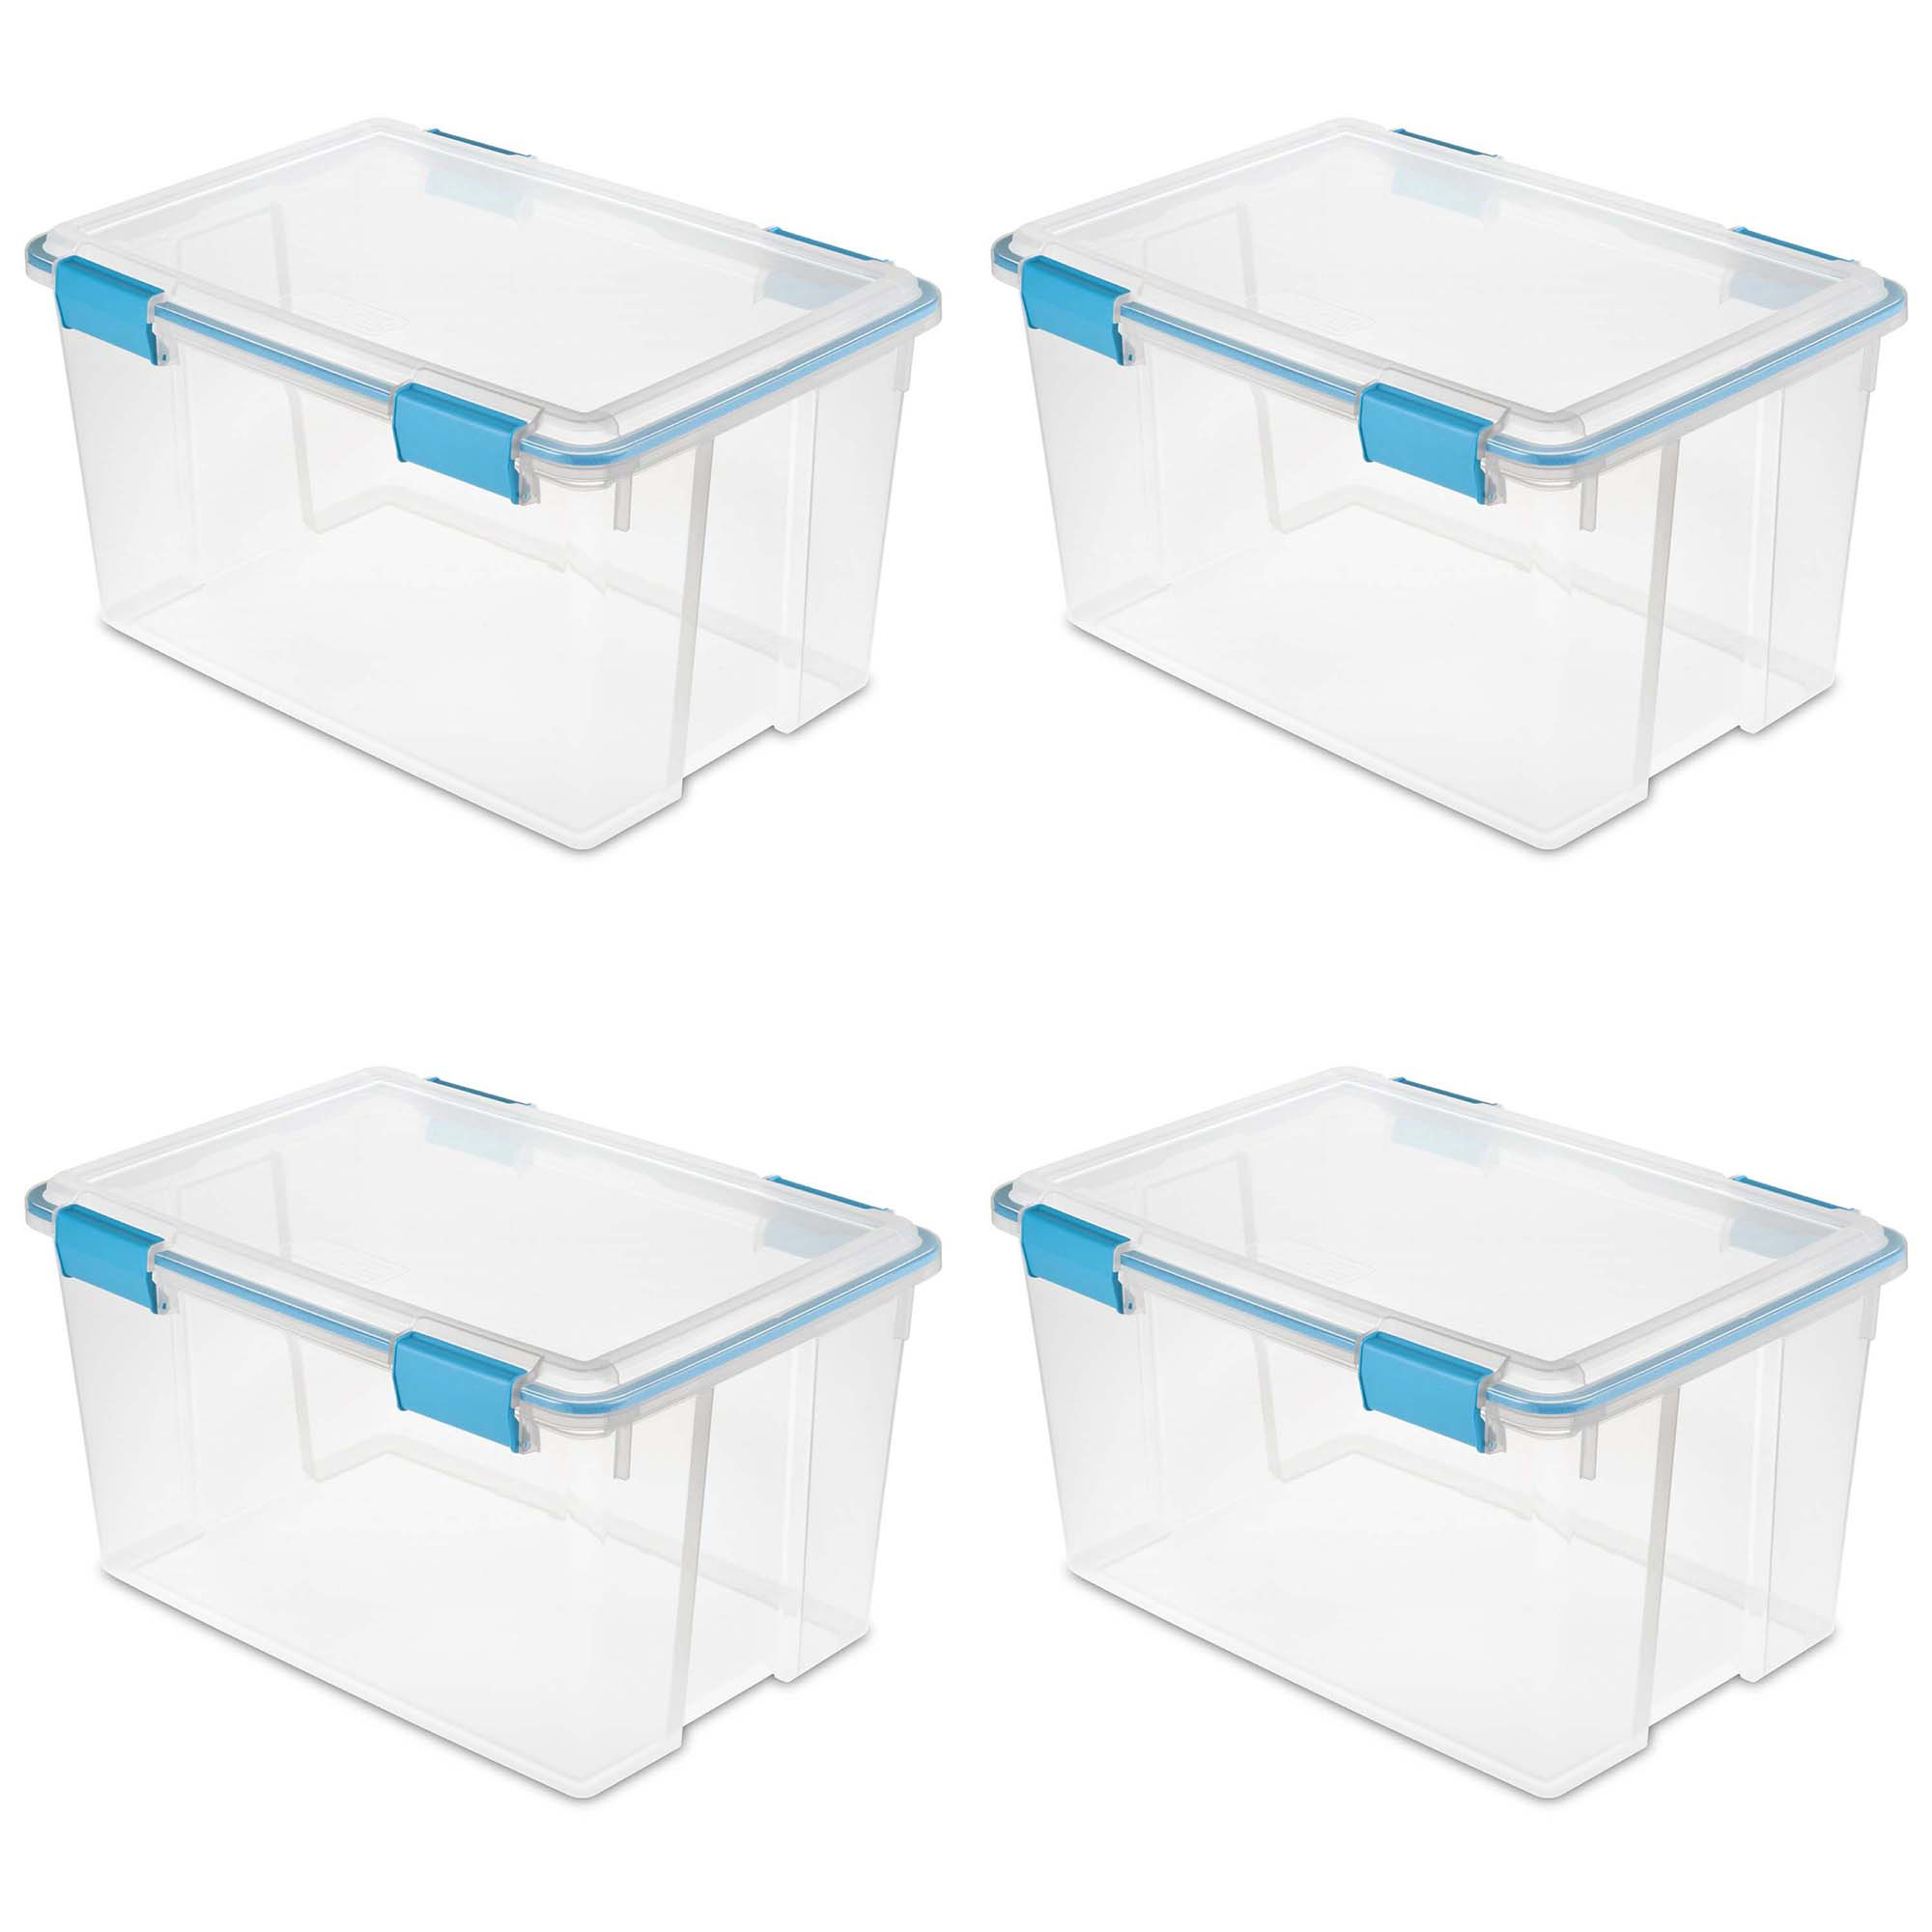 Sterilite 54 Quart Gasket Box in Clear with Blue Latches (4 Pack) | 19344304